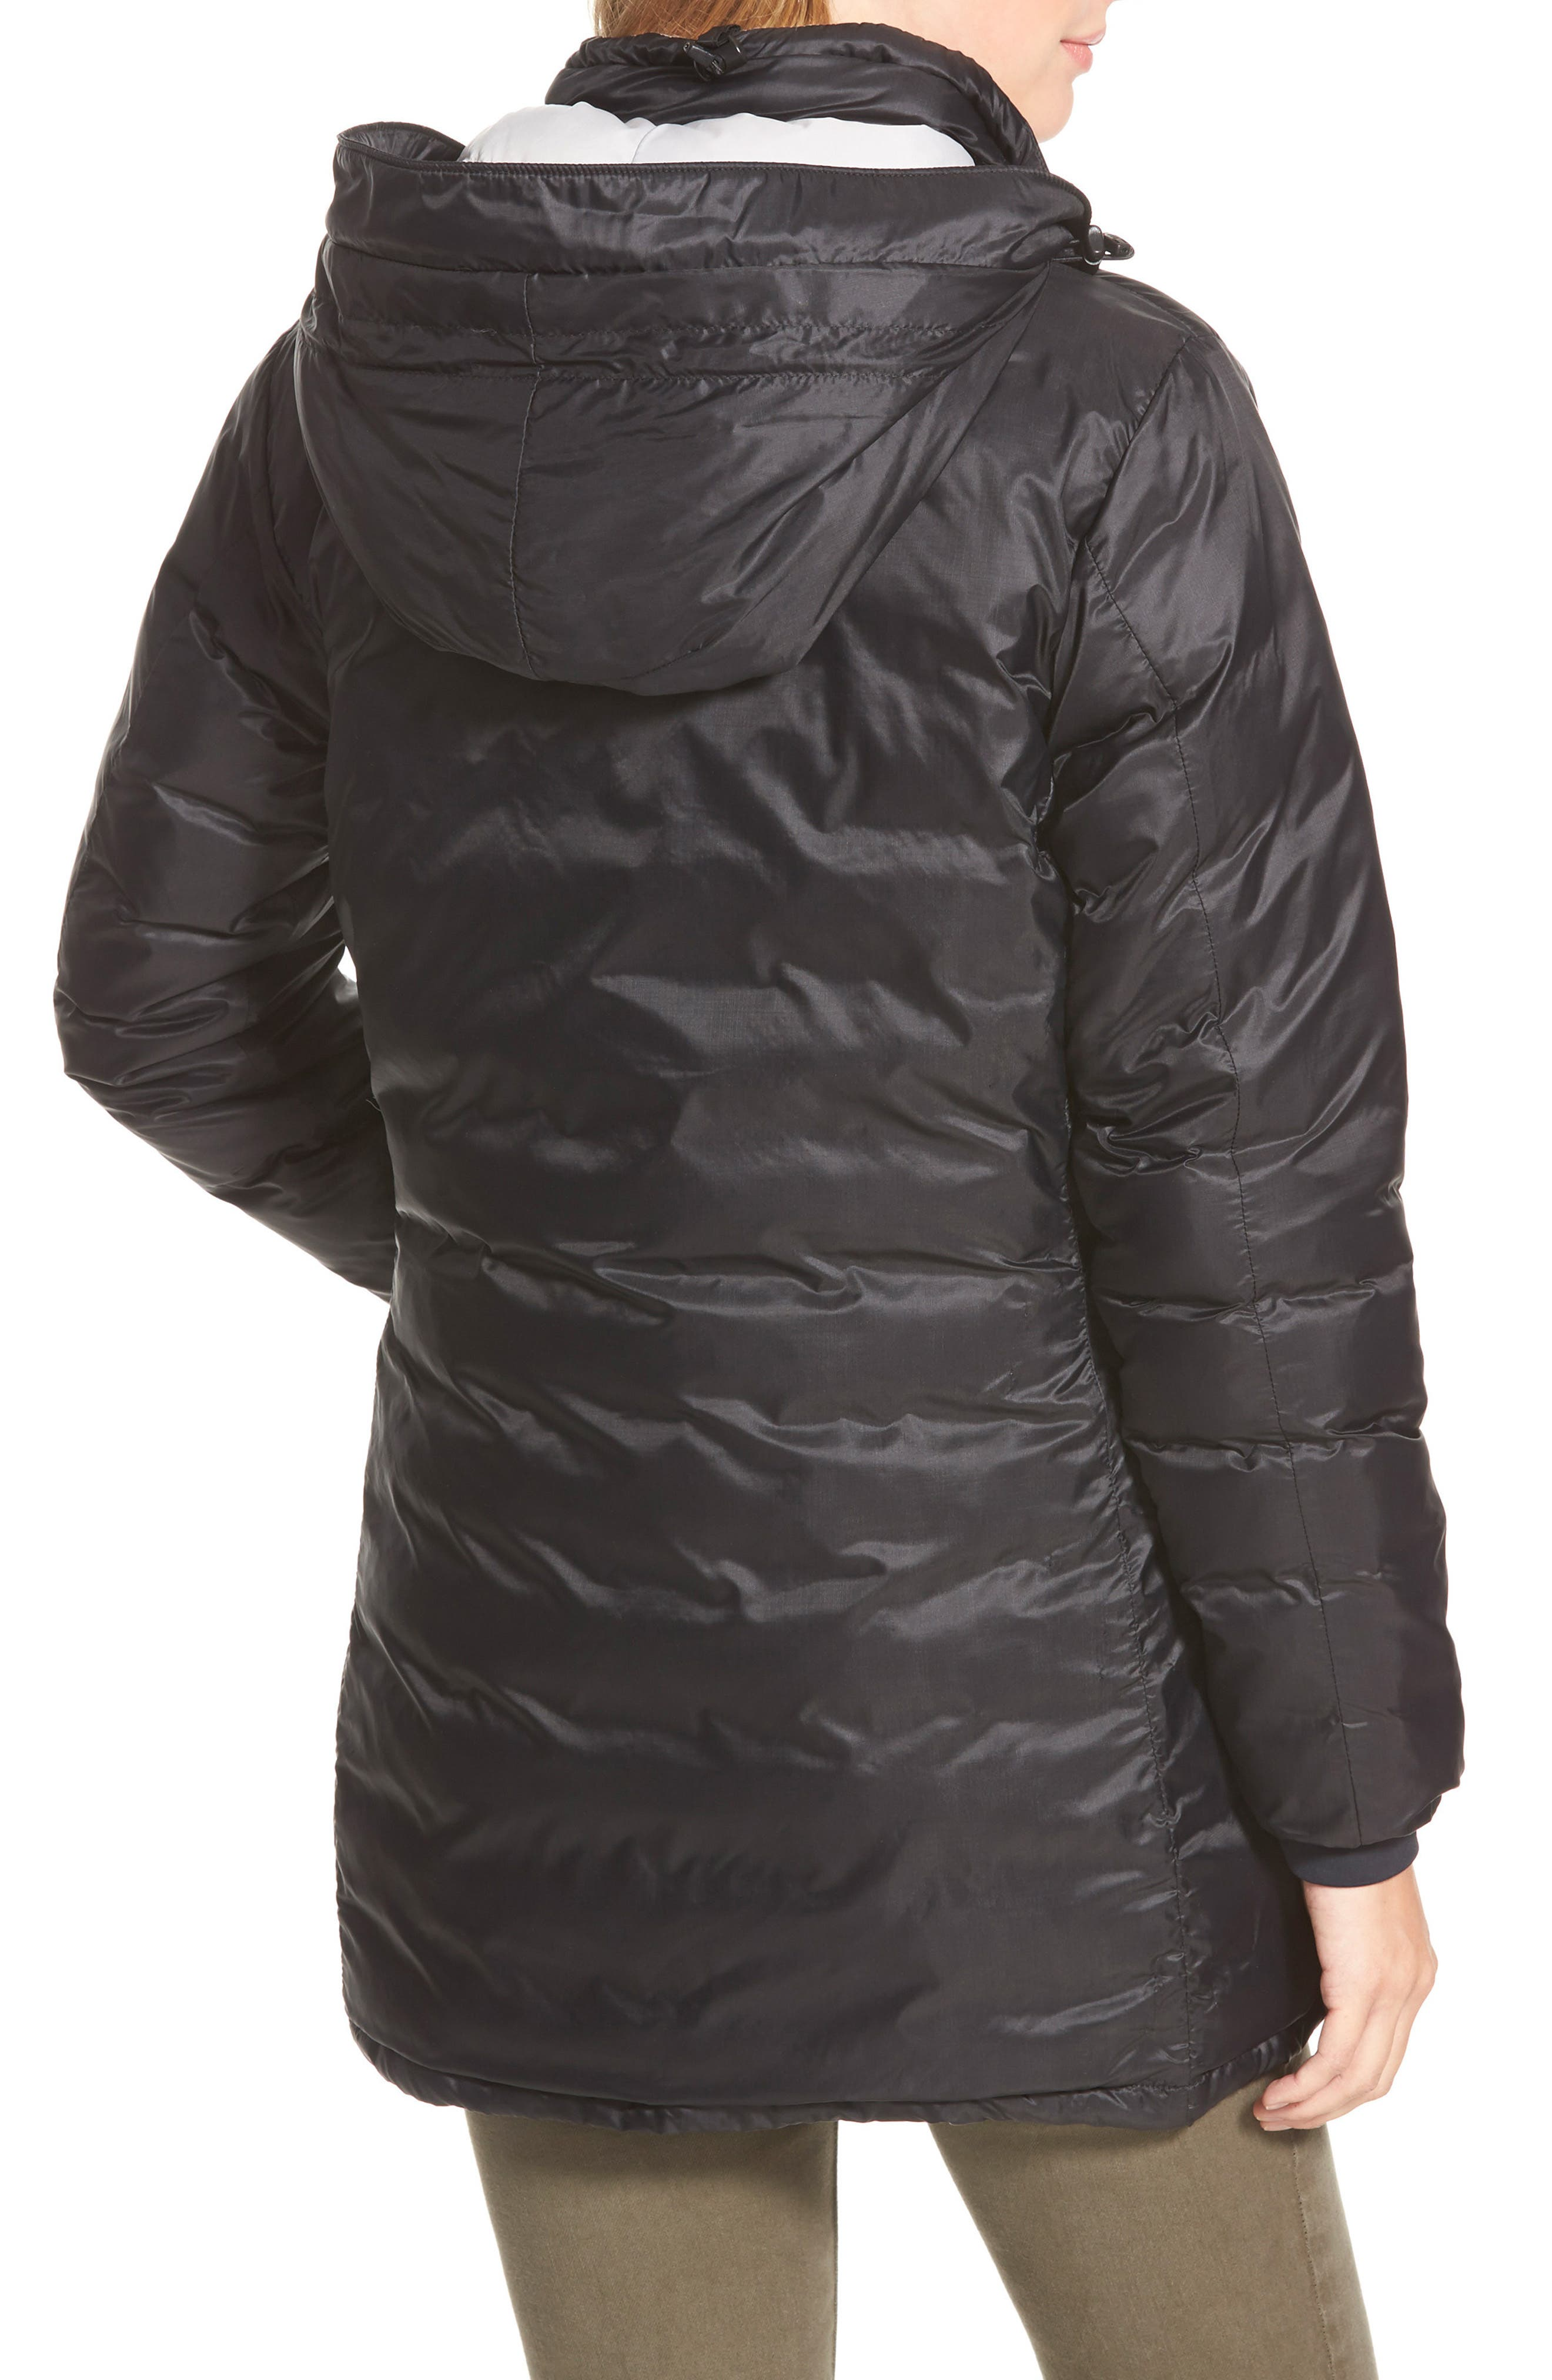 'Camp' Slim Fit Hooded Packable Down Jacket,                             Alternate thumbnail 2, color,                             BLACK